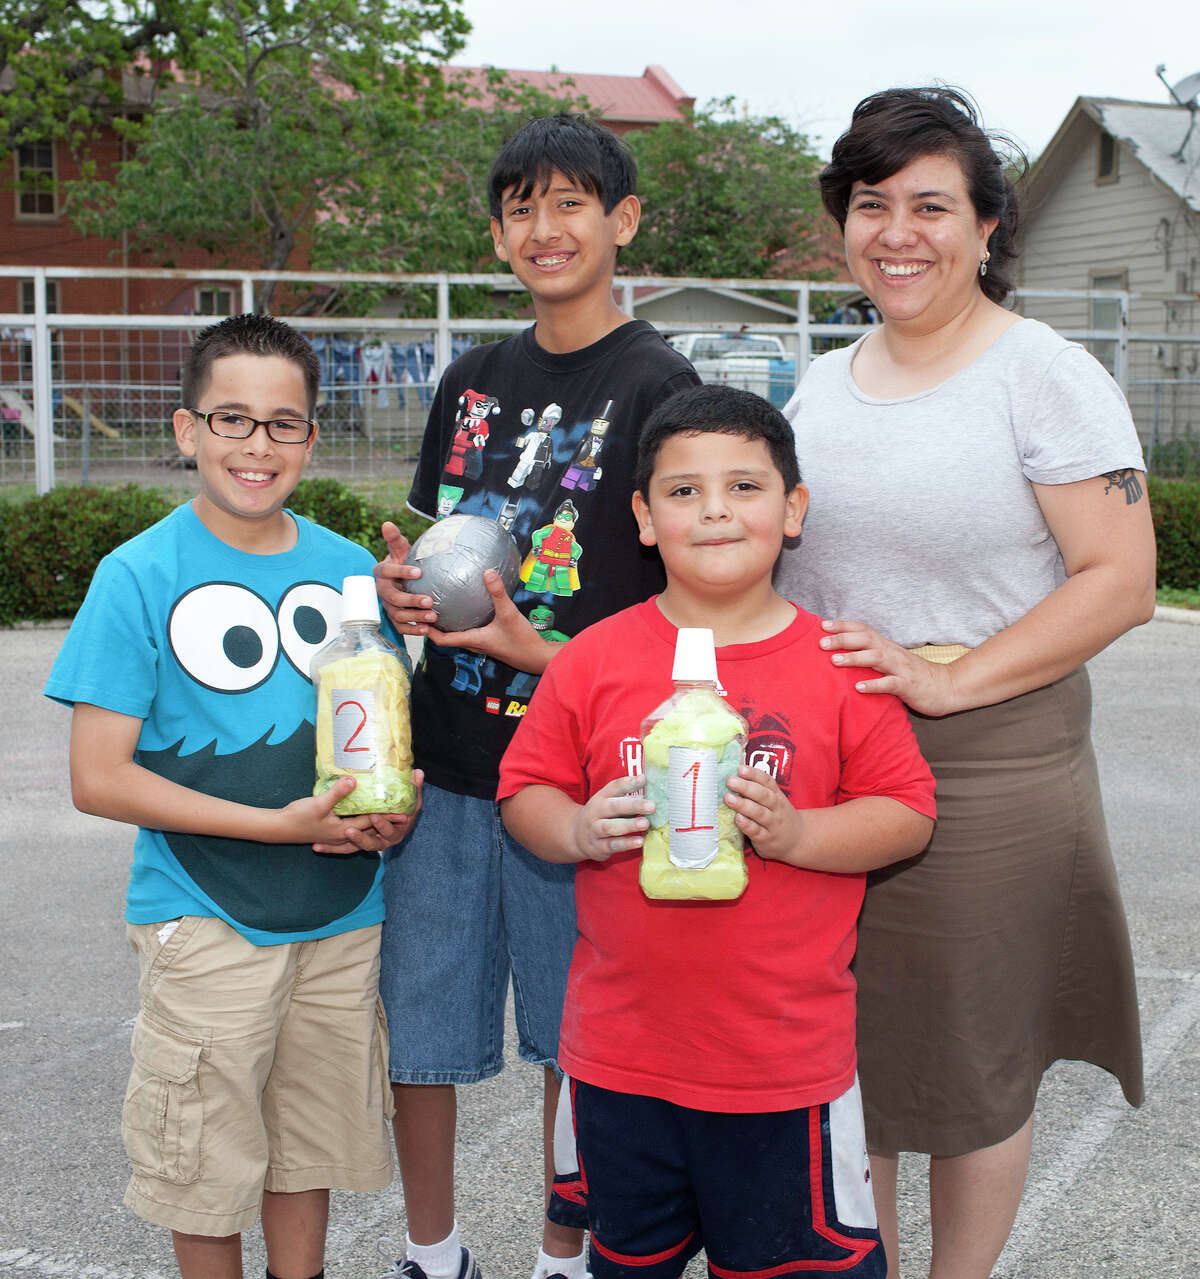 Christopher Freiry, 11 (from left), and Nicholas Cortinas, 10, get together with Daniel Ramirez, 6, and instructor Jessica O. Guerrero during the Guadalupe Cultural Arts Center's family block party at the center.